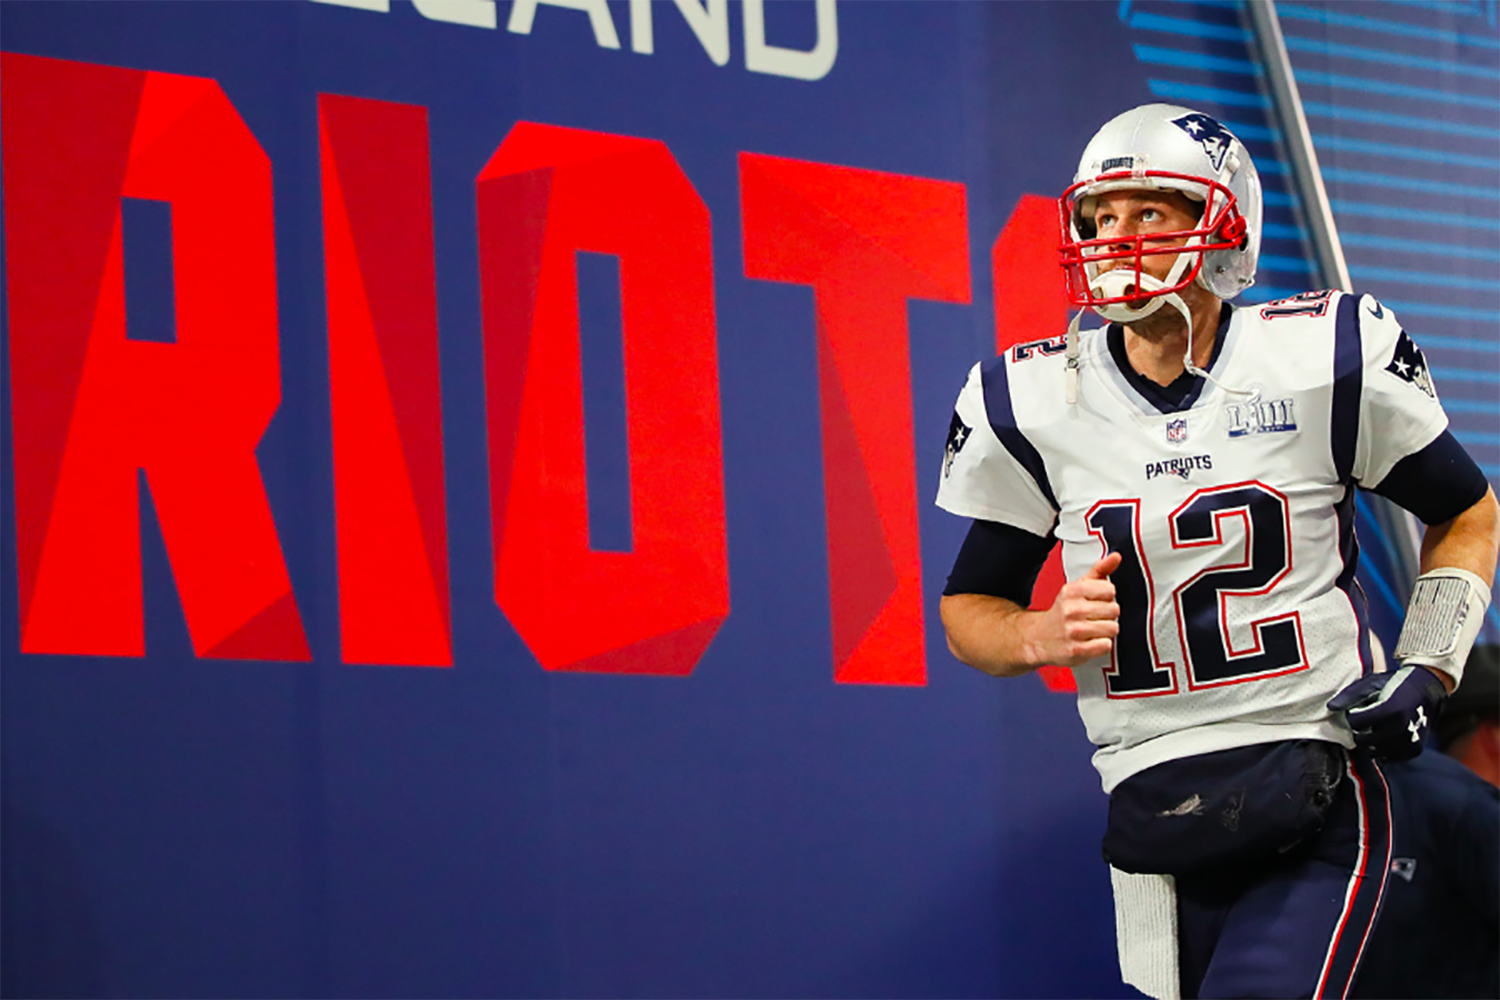 The New England Patriots Quarterback Tom Brady played in Super Bowl LIII on Feb. 3, 2019. This was Brady's sixth Super Bowl win.